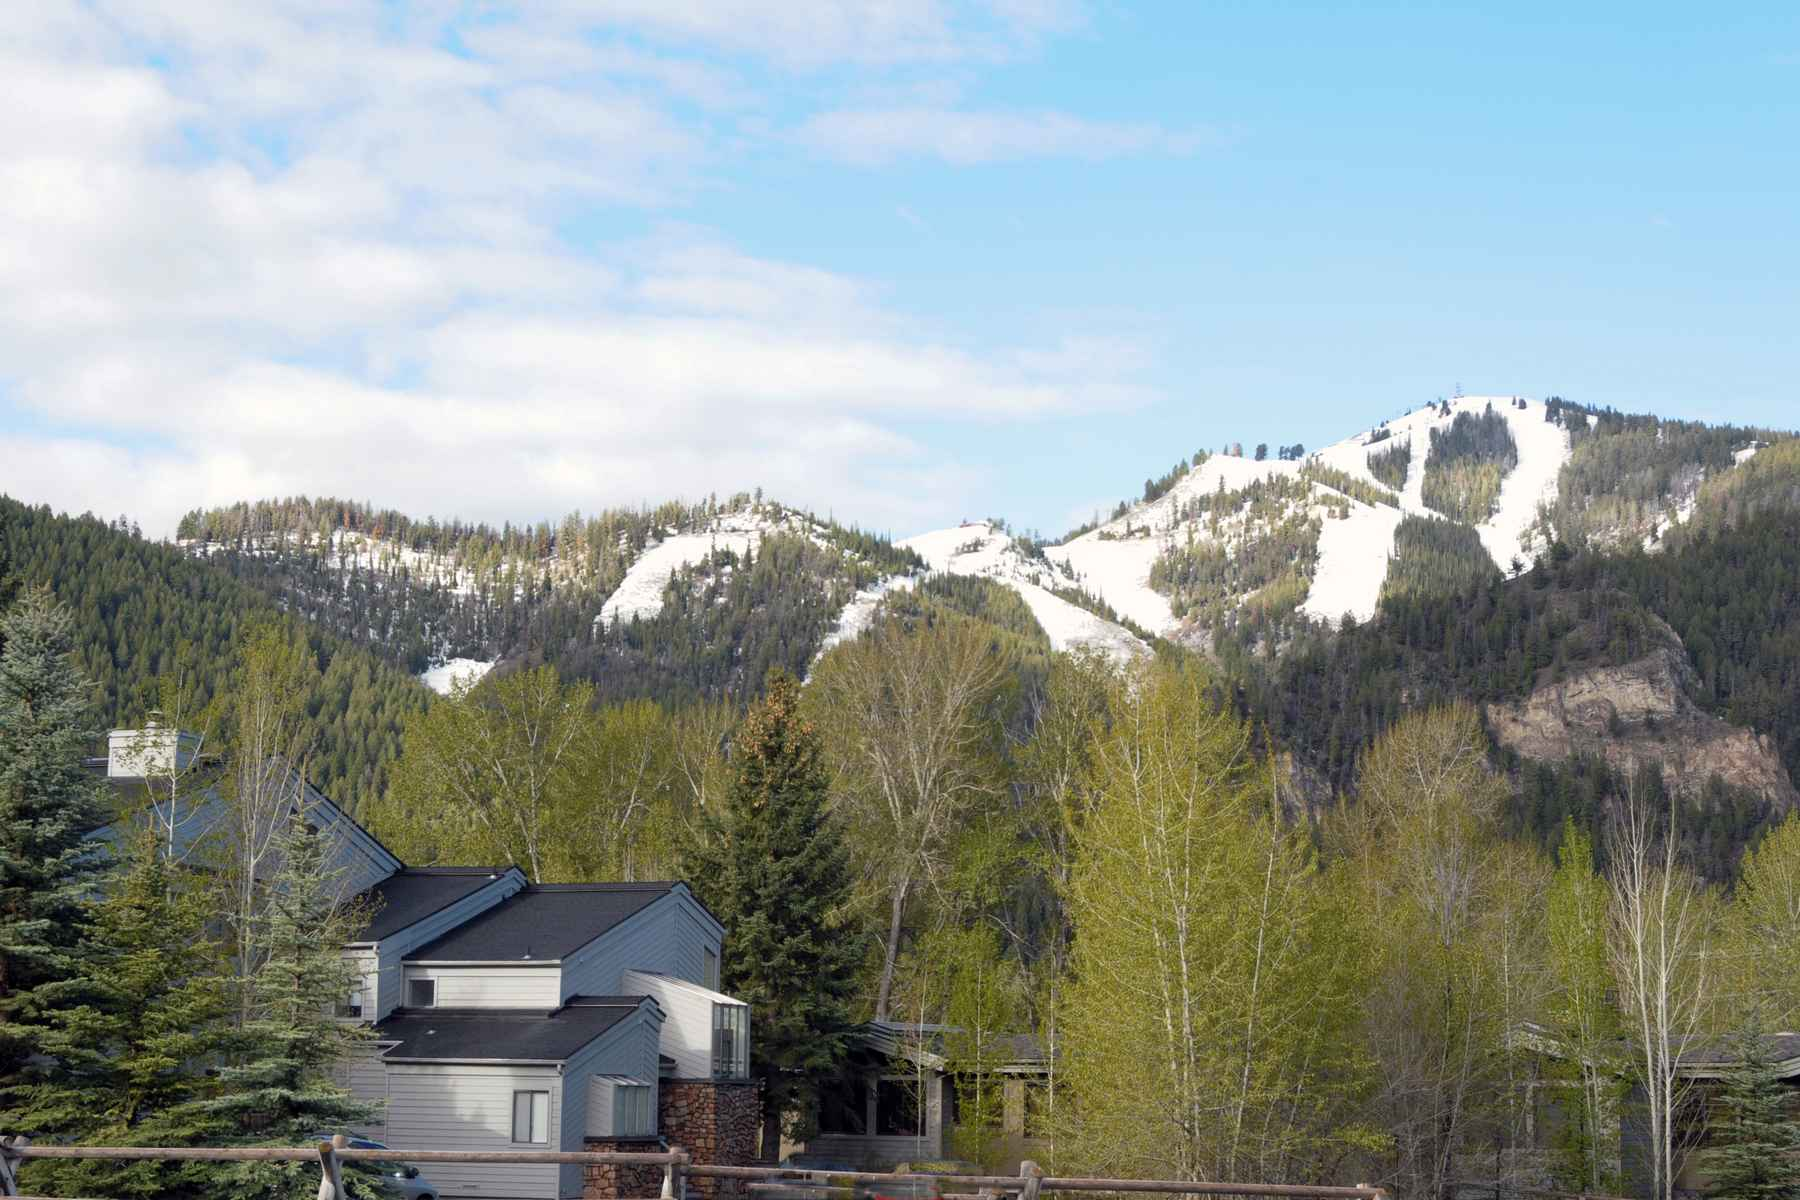 Condominium for Sale at In Town Value 361 S. Leadville Ave Ketchum, Idaho 83340 United States